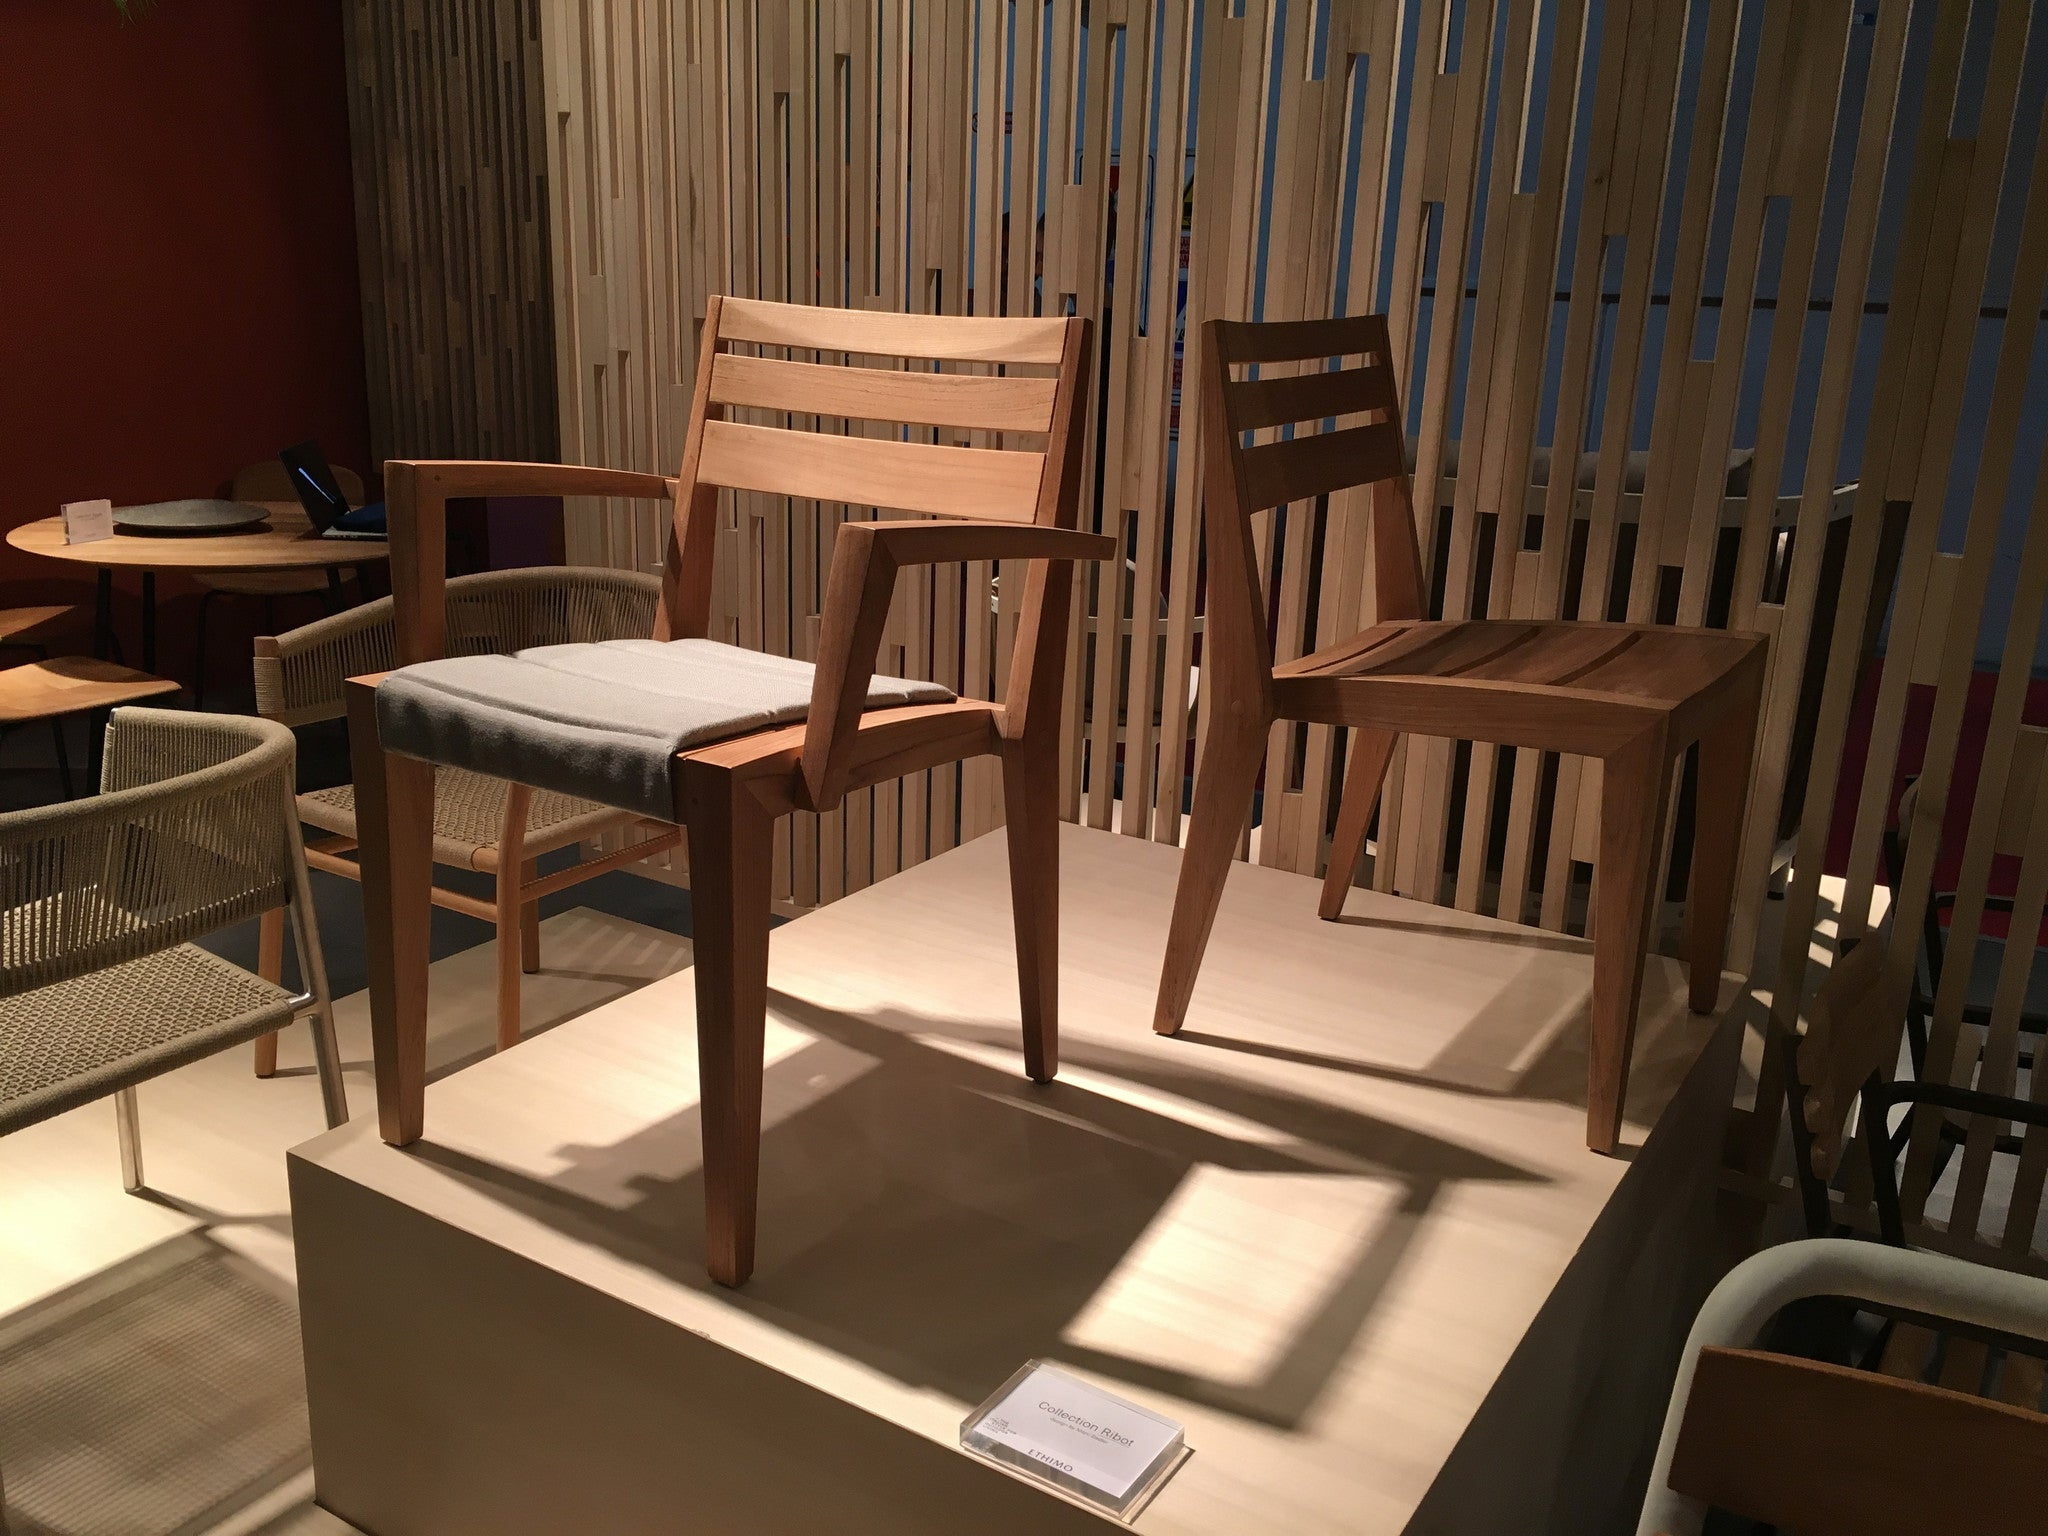 Ethimo at Salone 2017